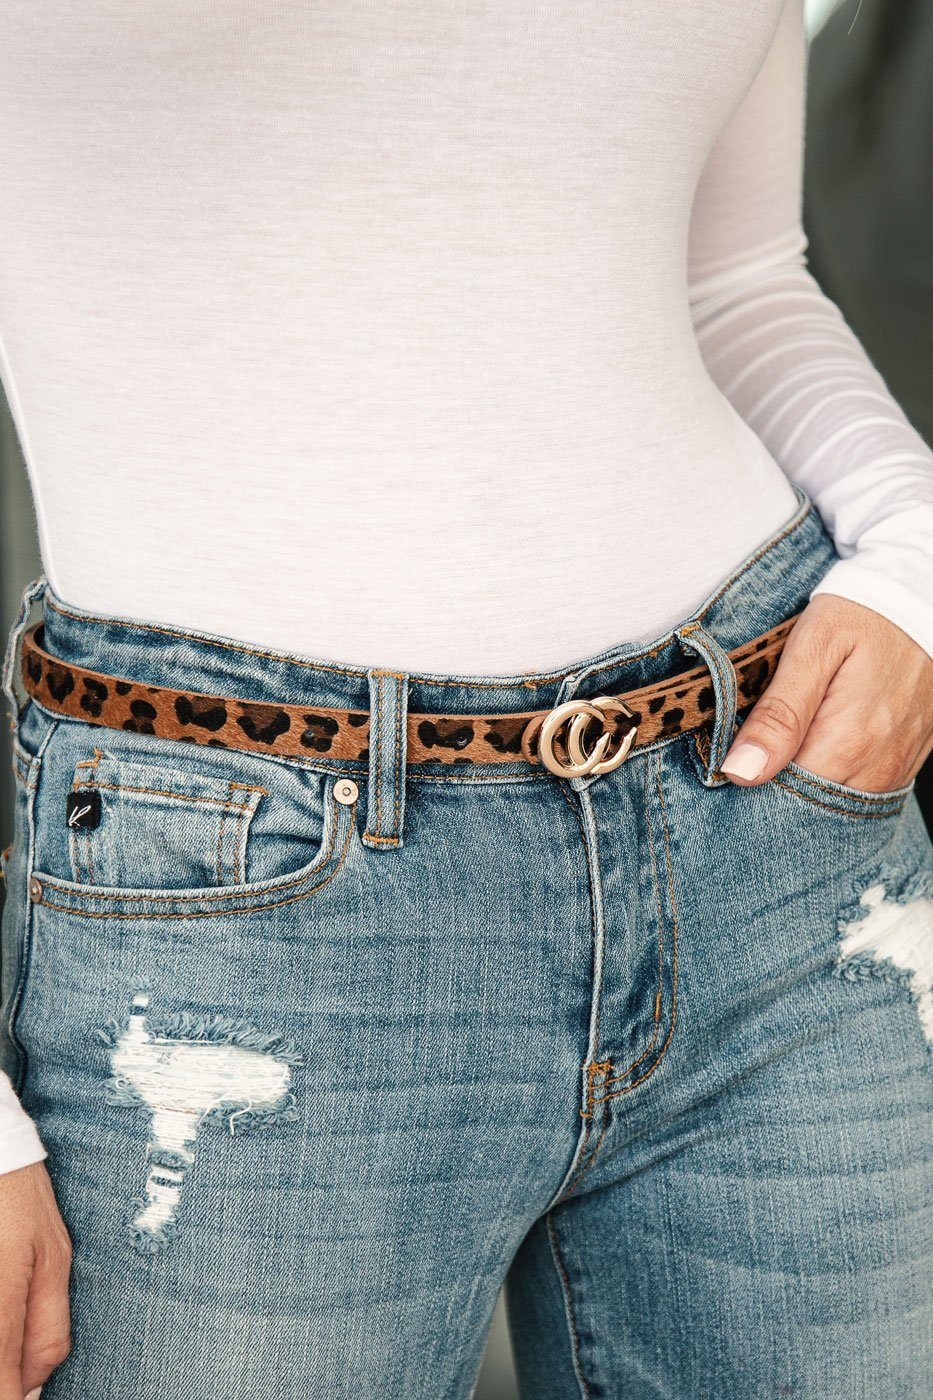 Thin Leopard Print Belt with Gold Medallion Clasp